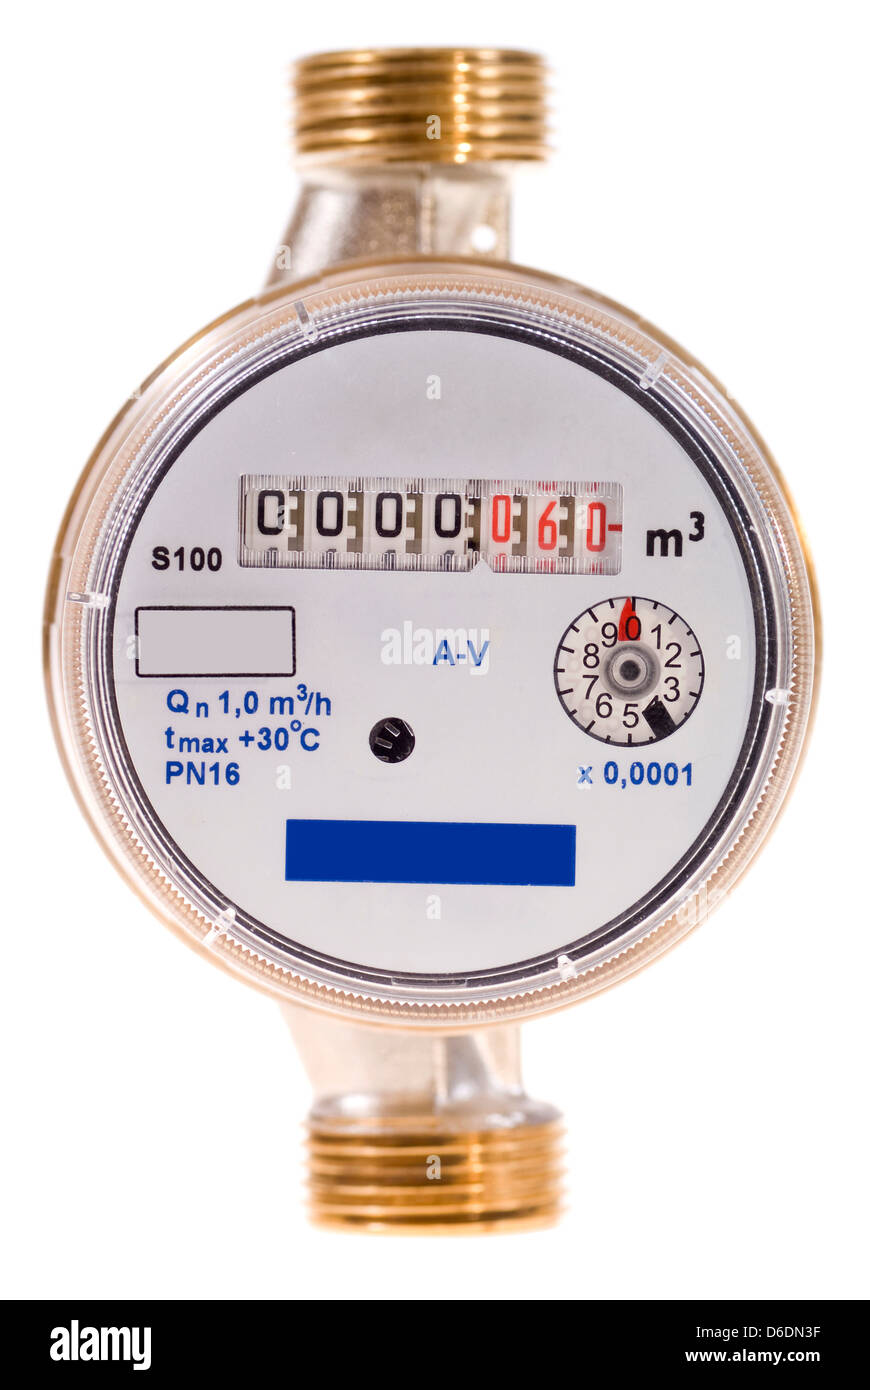 new water meter on white background - Stock Image